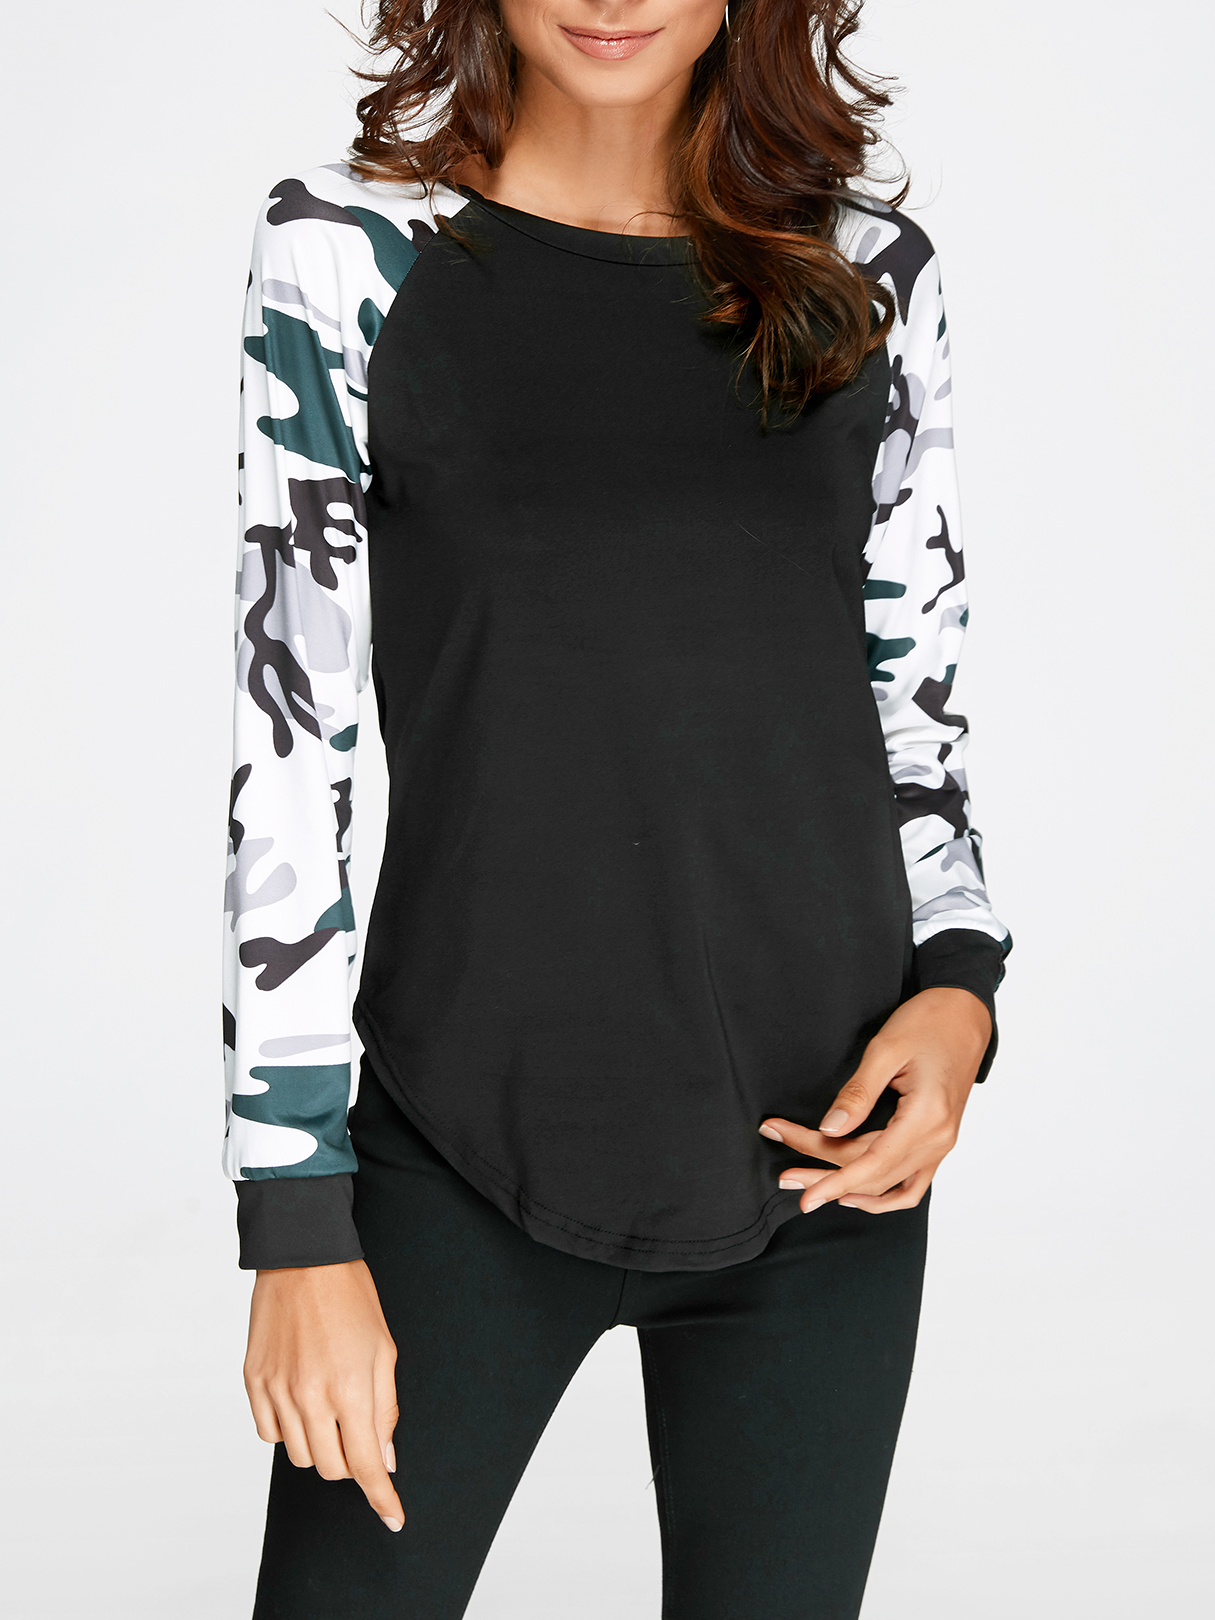 Black Camouflage Round Neck Long Sleeves T-shirt black stripe round neck long sleeves drawstring waist active suit